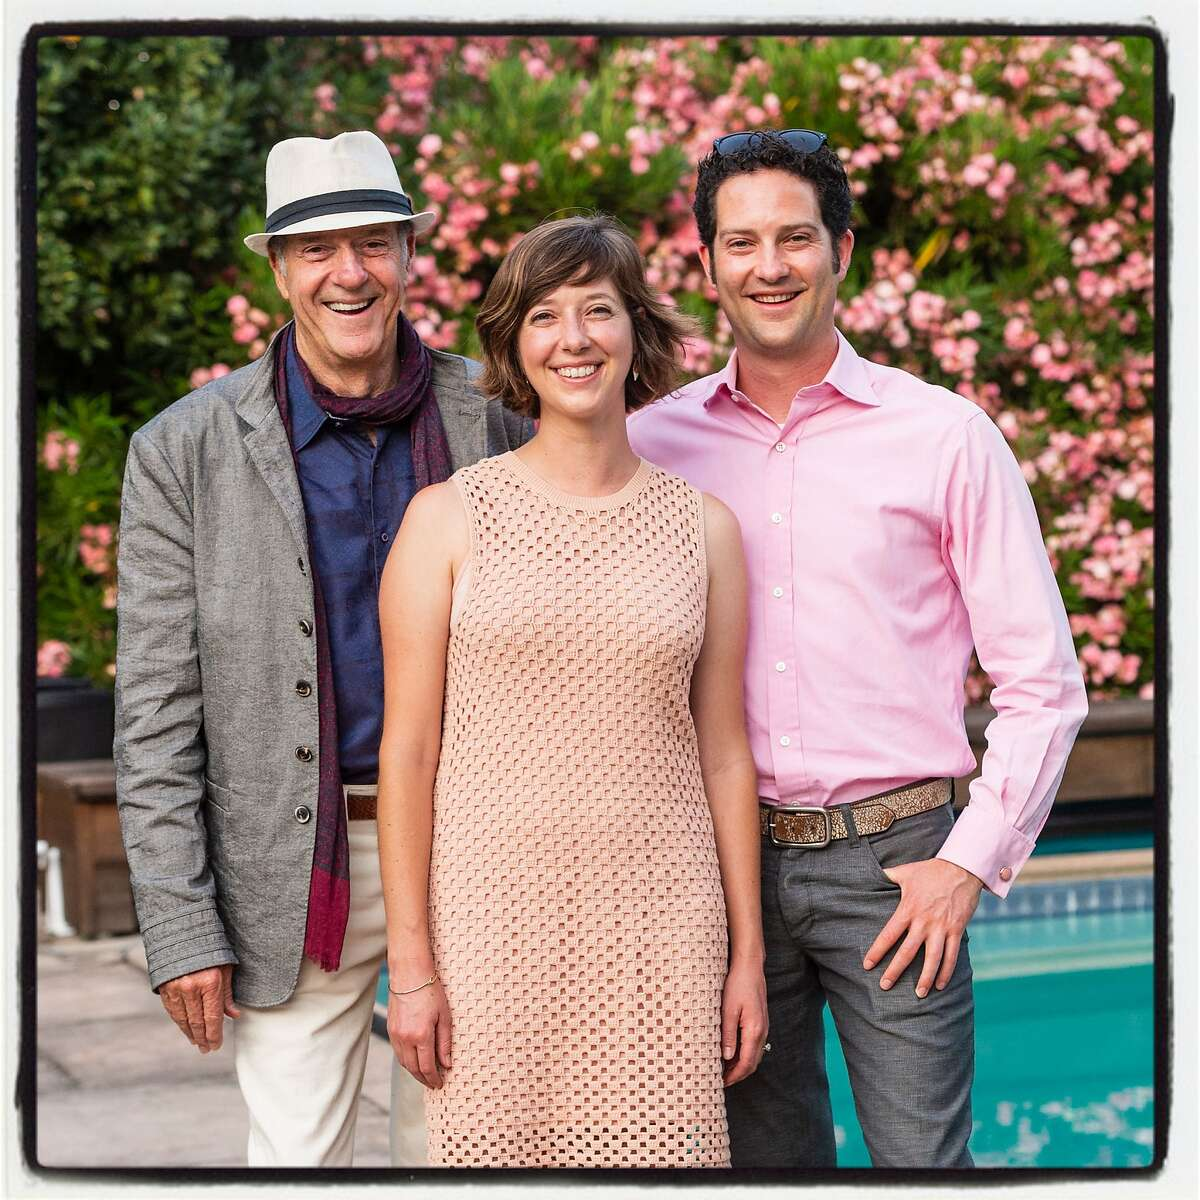 Vintner John Trefethen (left) with daughter Hailey Trefethen and son Loren Trefethen celebrate their winery's 50th anniversary during Festival Napa Valley. July 21, 2018.